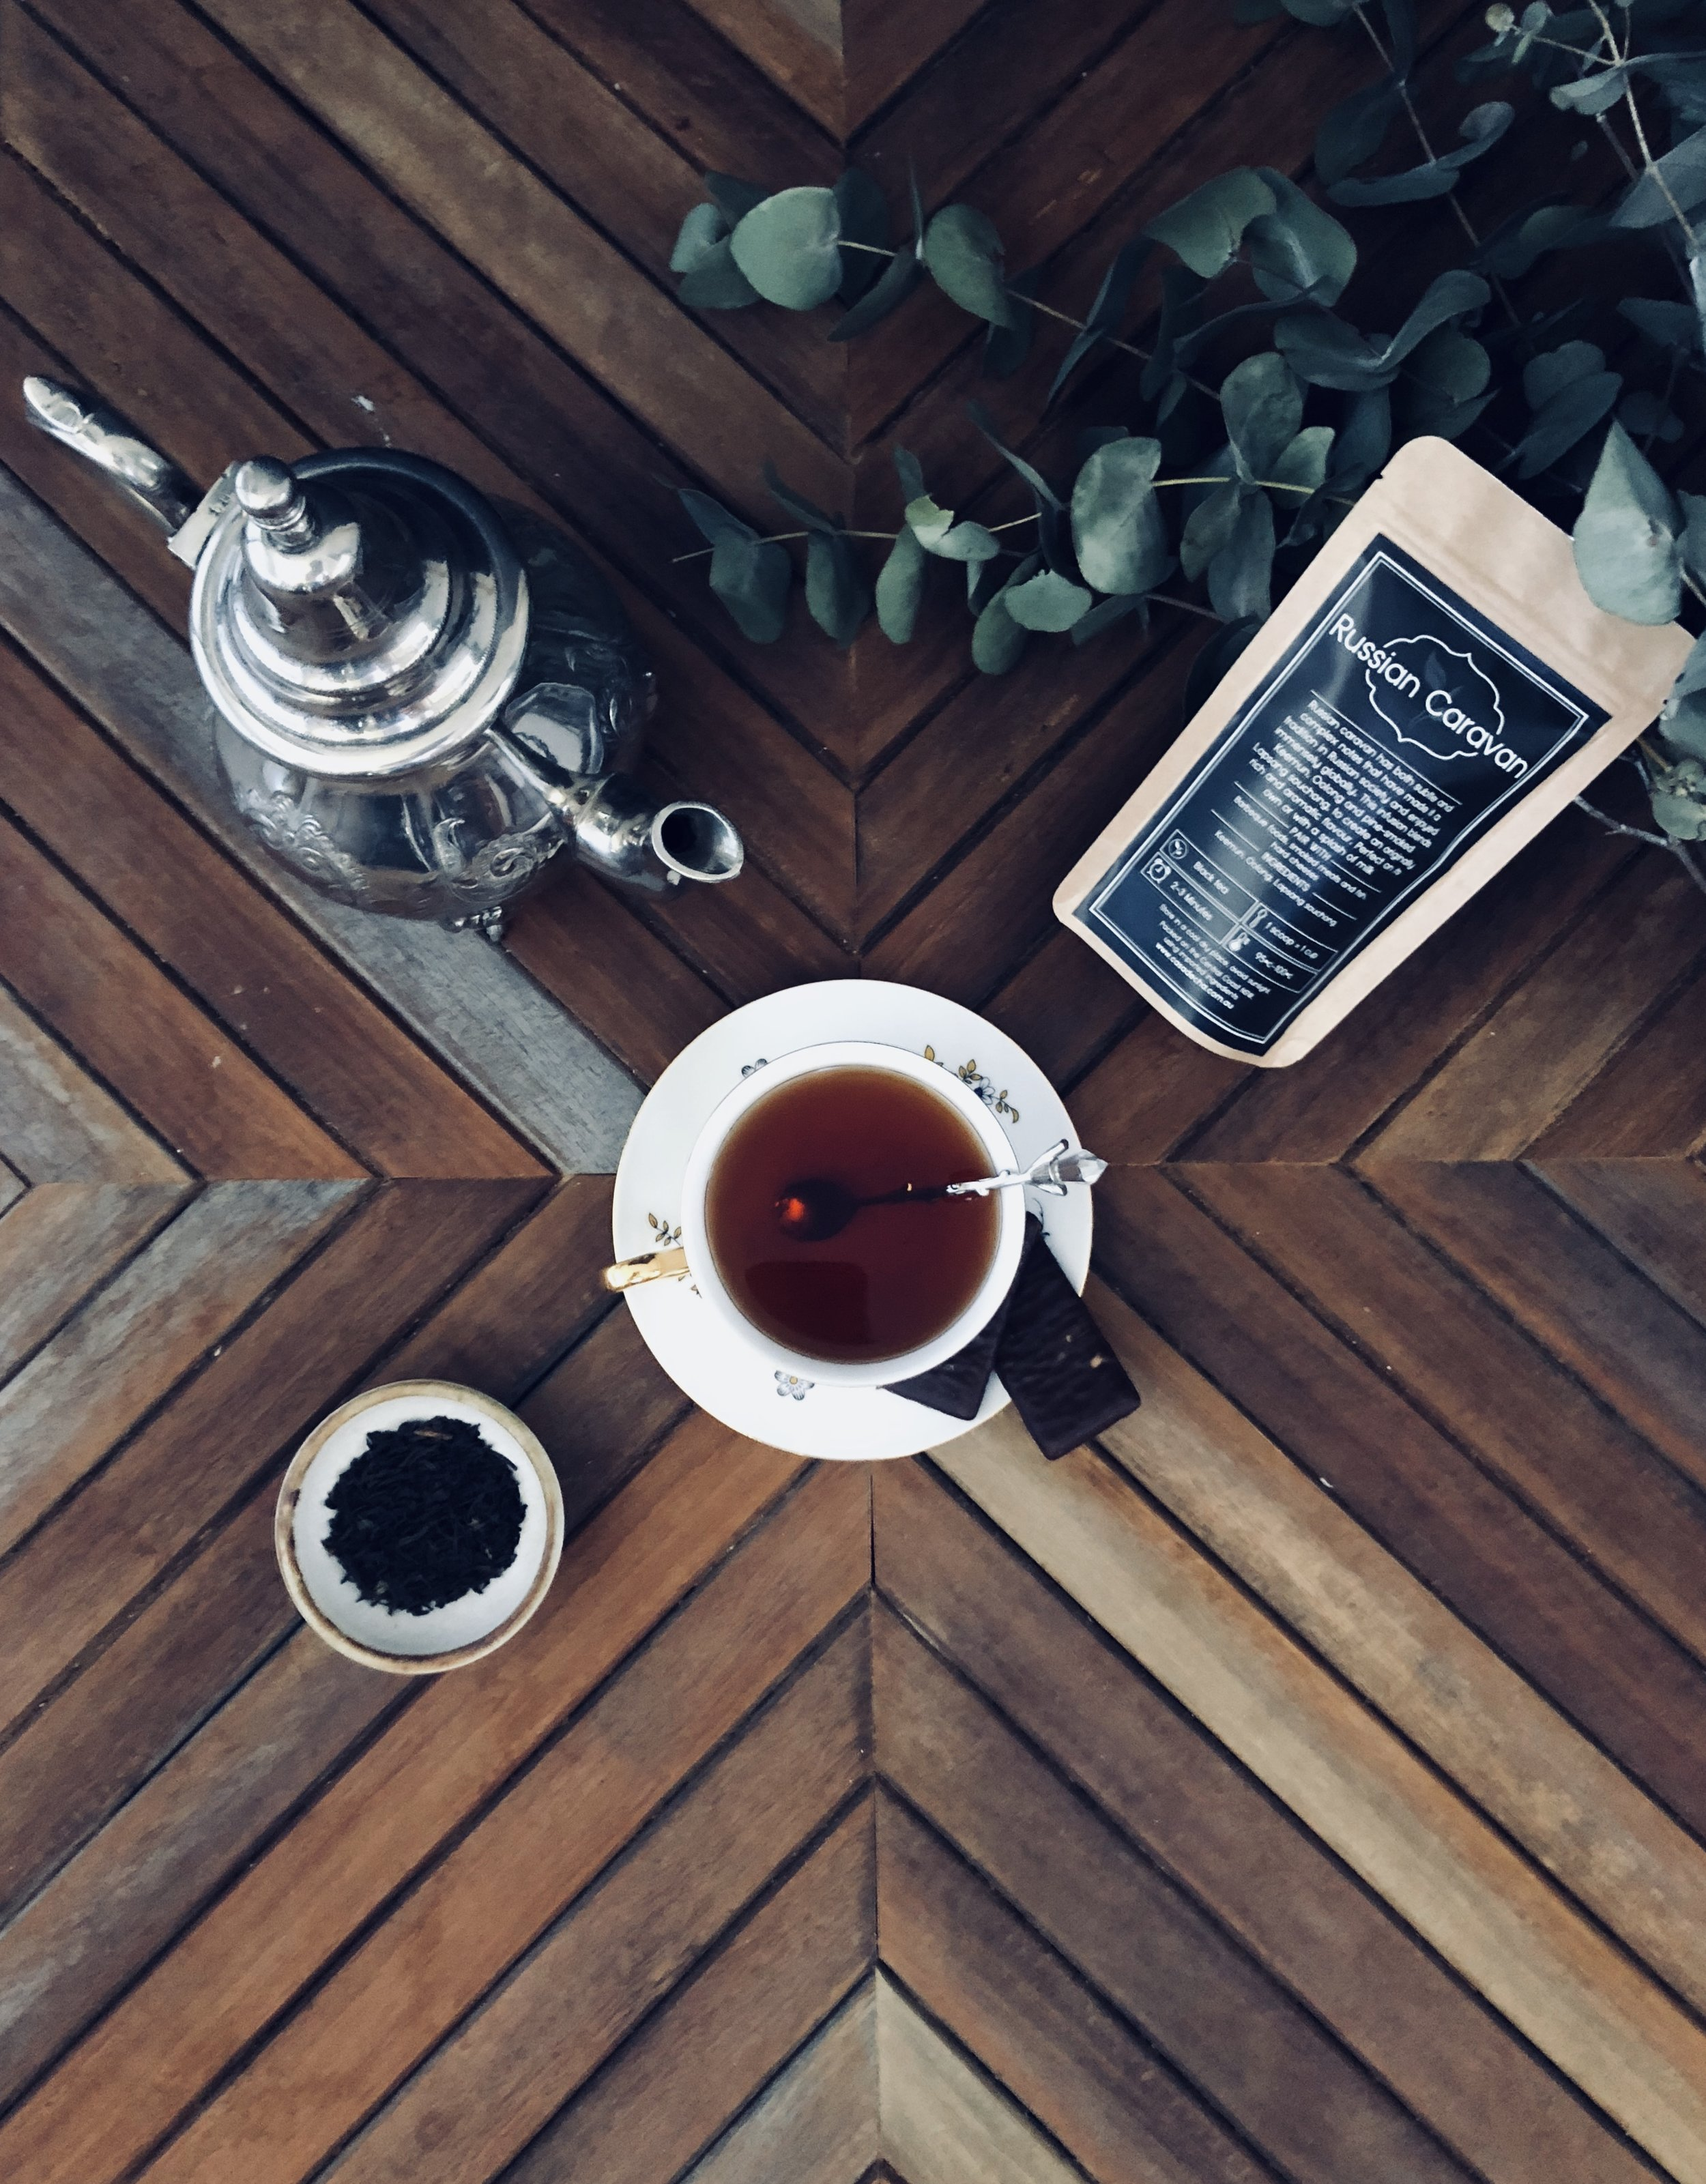 Russian Caravan has both subtle and complex notes that have made it a tradition in Russian society and enjoyed immensely elsewhere. This blend contains Keemun, Oolong, and pine-smoked Lapsang Souchong to create an originally rich and aromatic flavour.